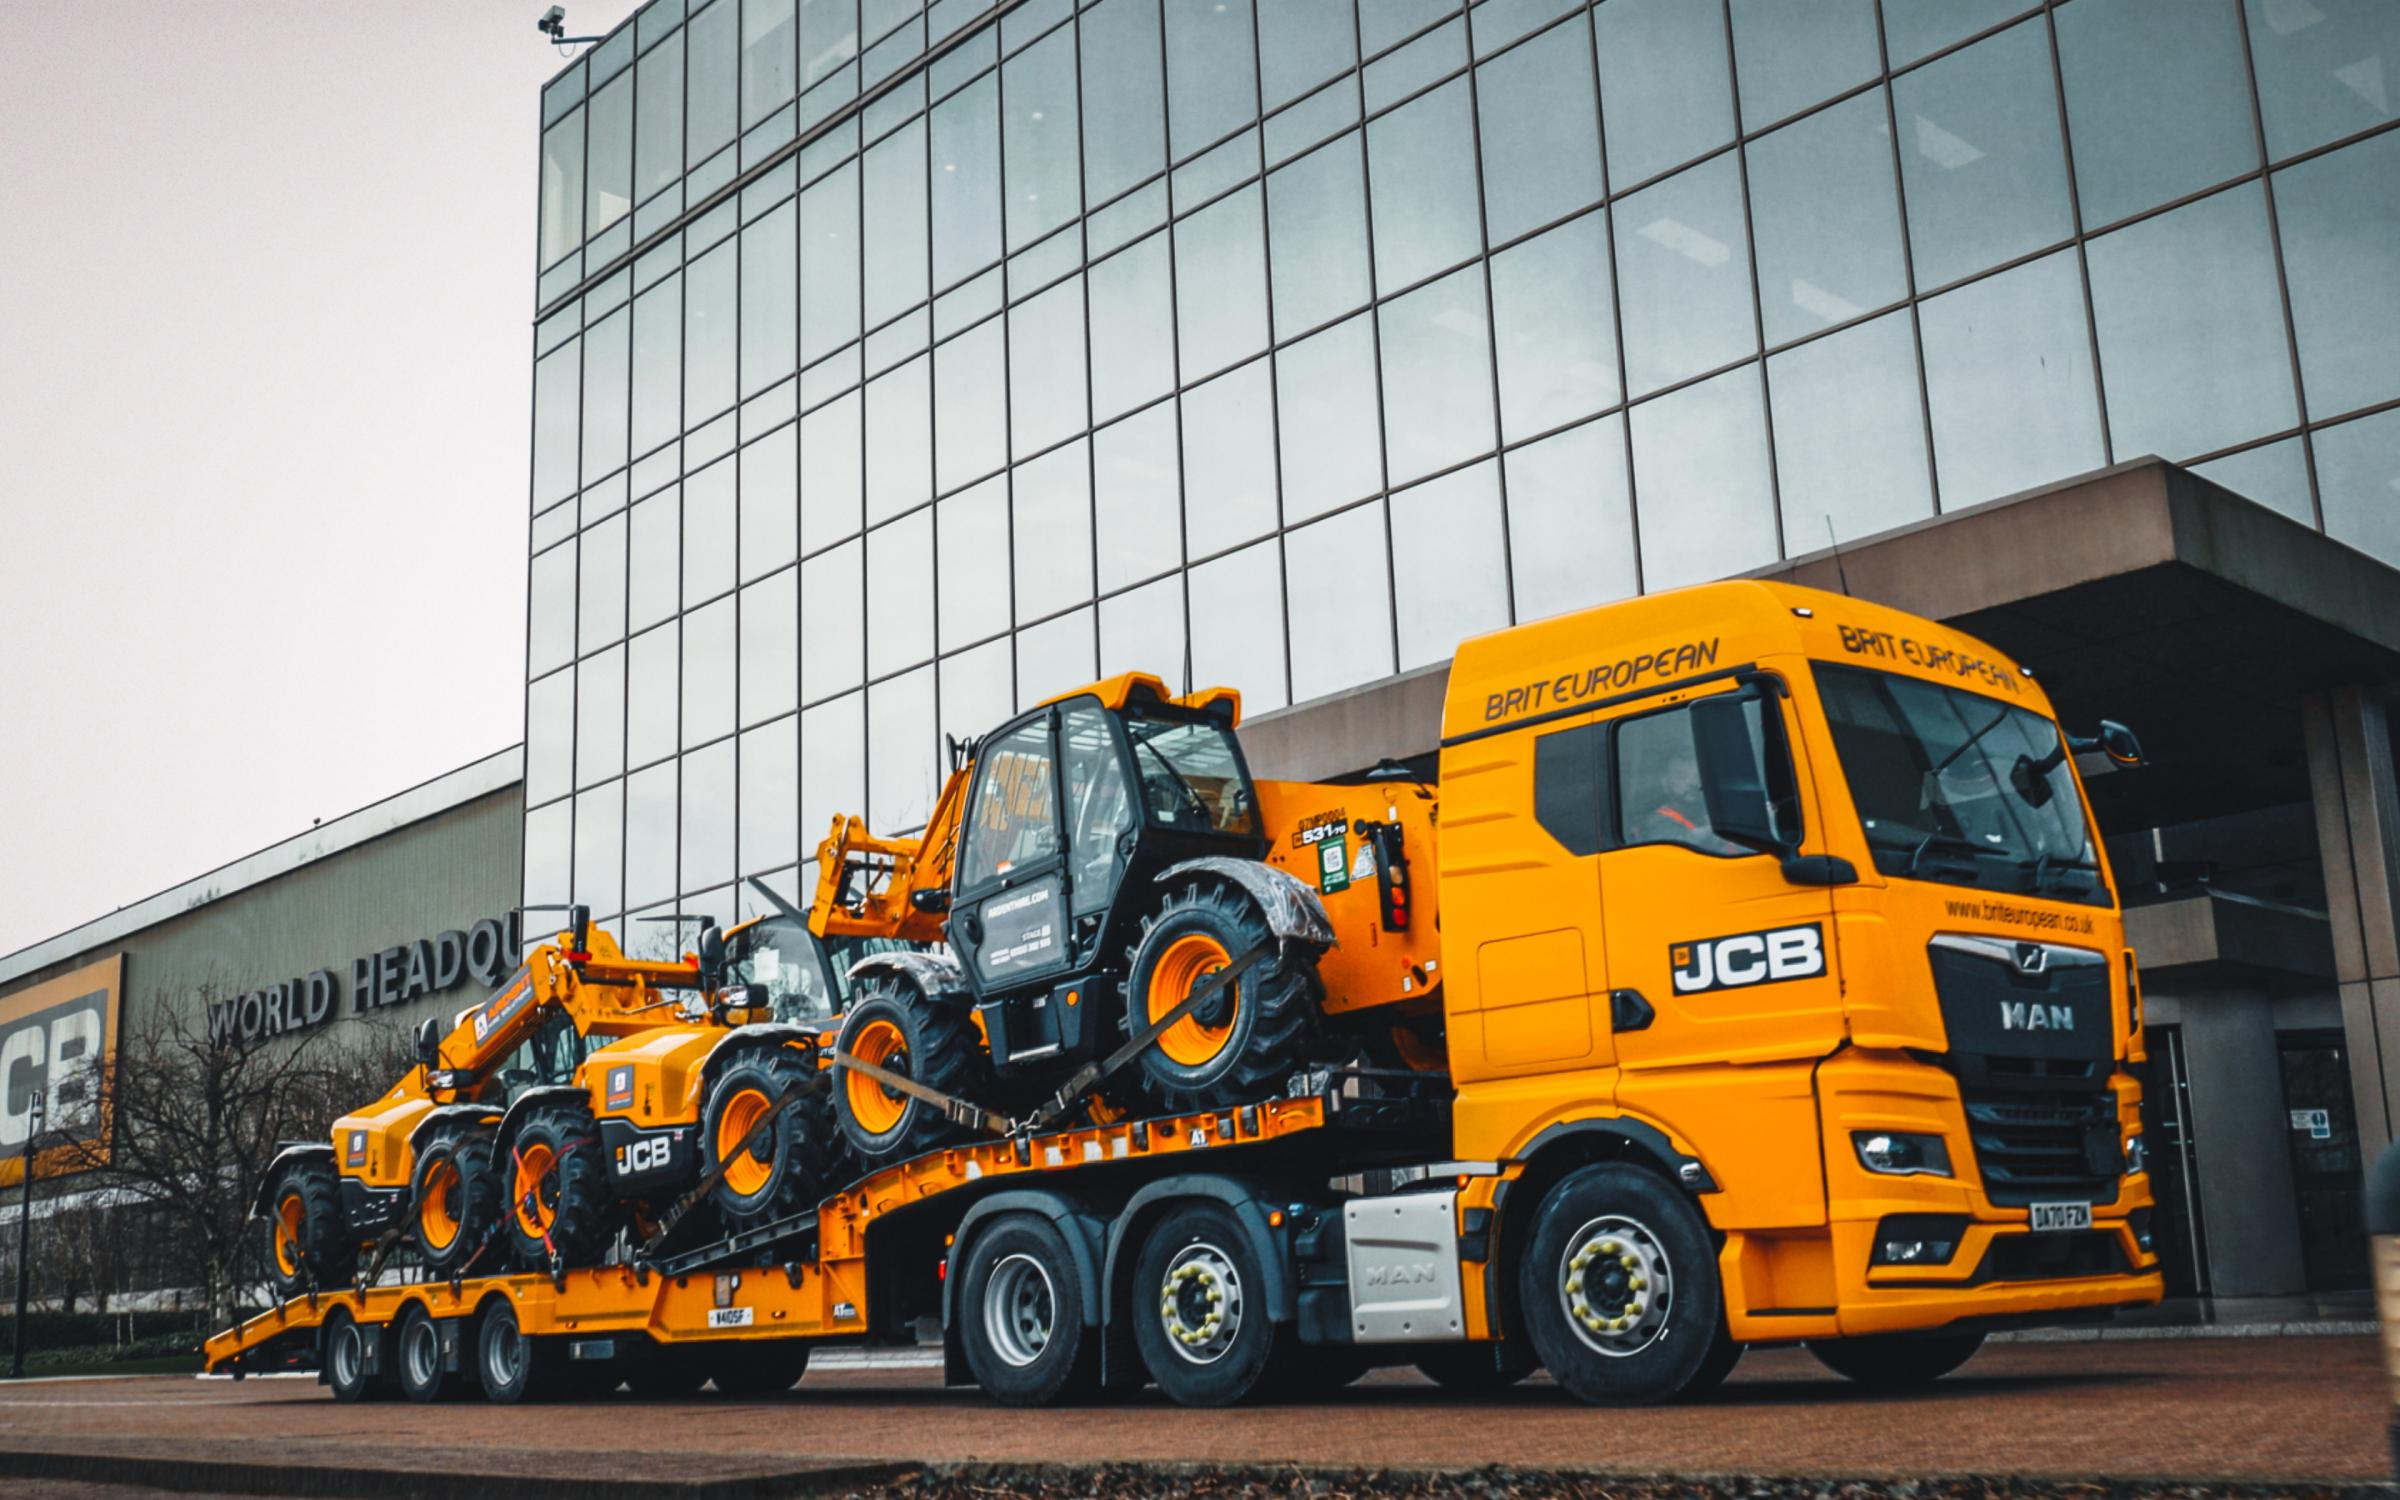 Ready for shipment - UK hirer, Ardent, has placed a £26m order for JCB machines